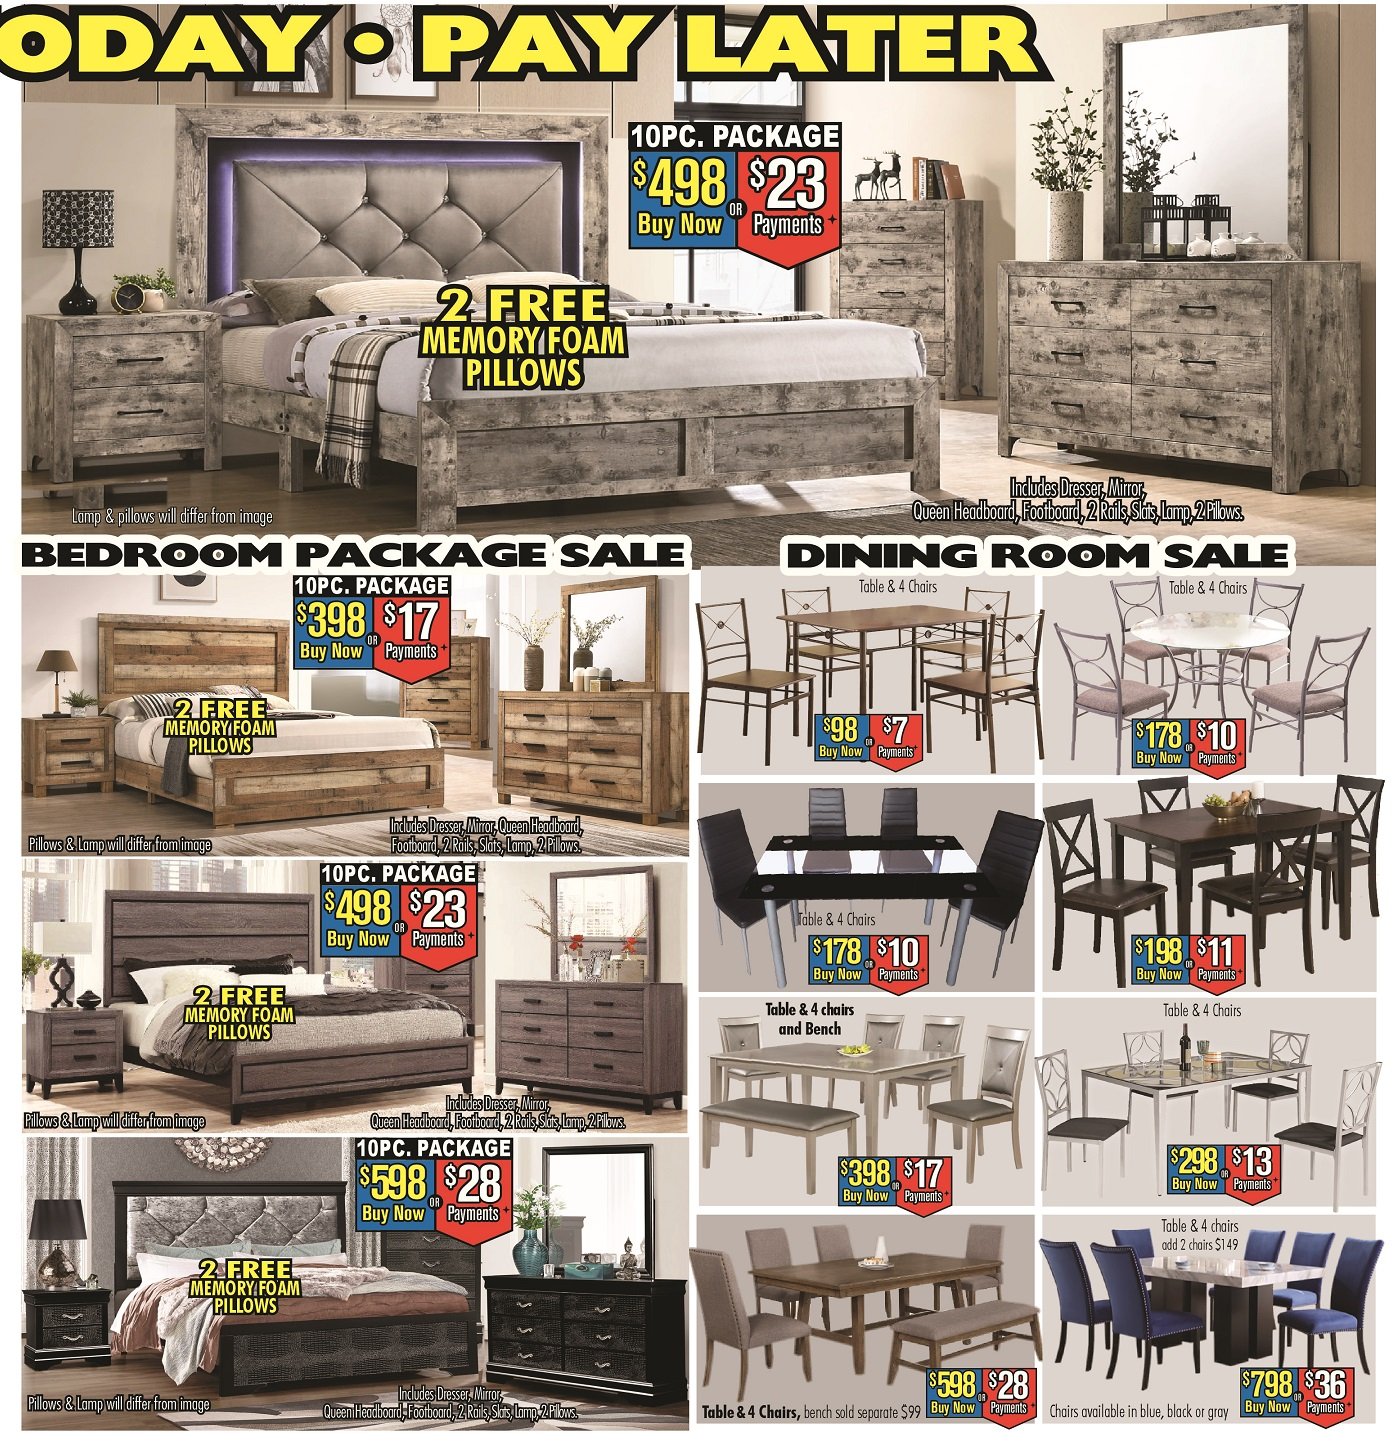 Price Busters Discount Furniture 800 E 25th St Baltimore Md 21218 Yp Com